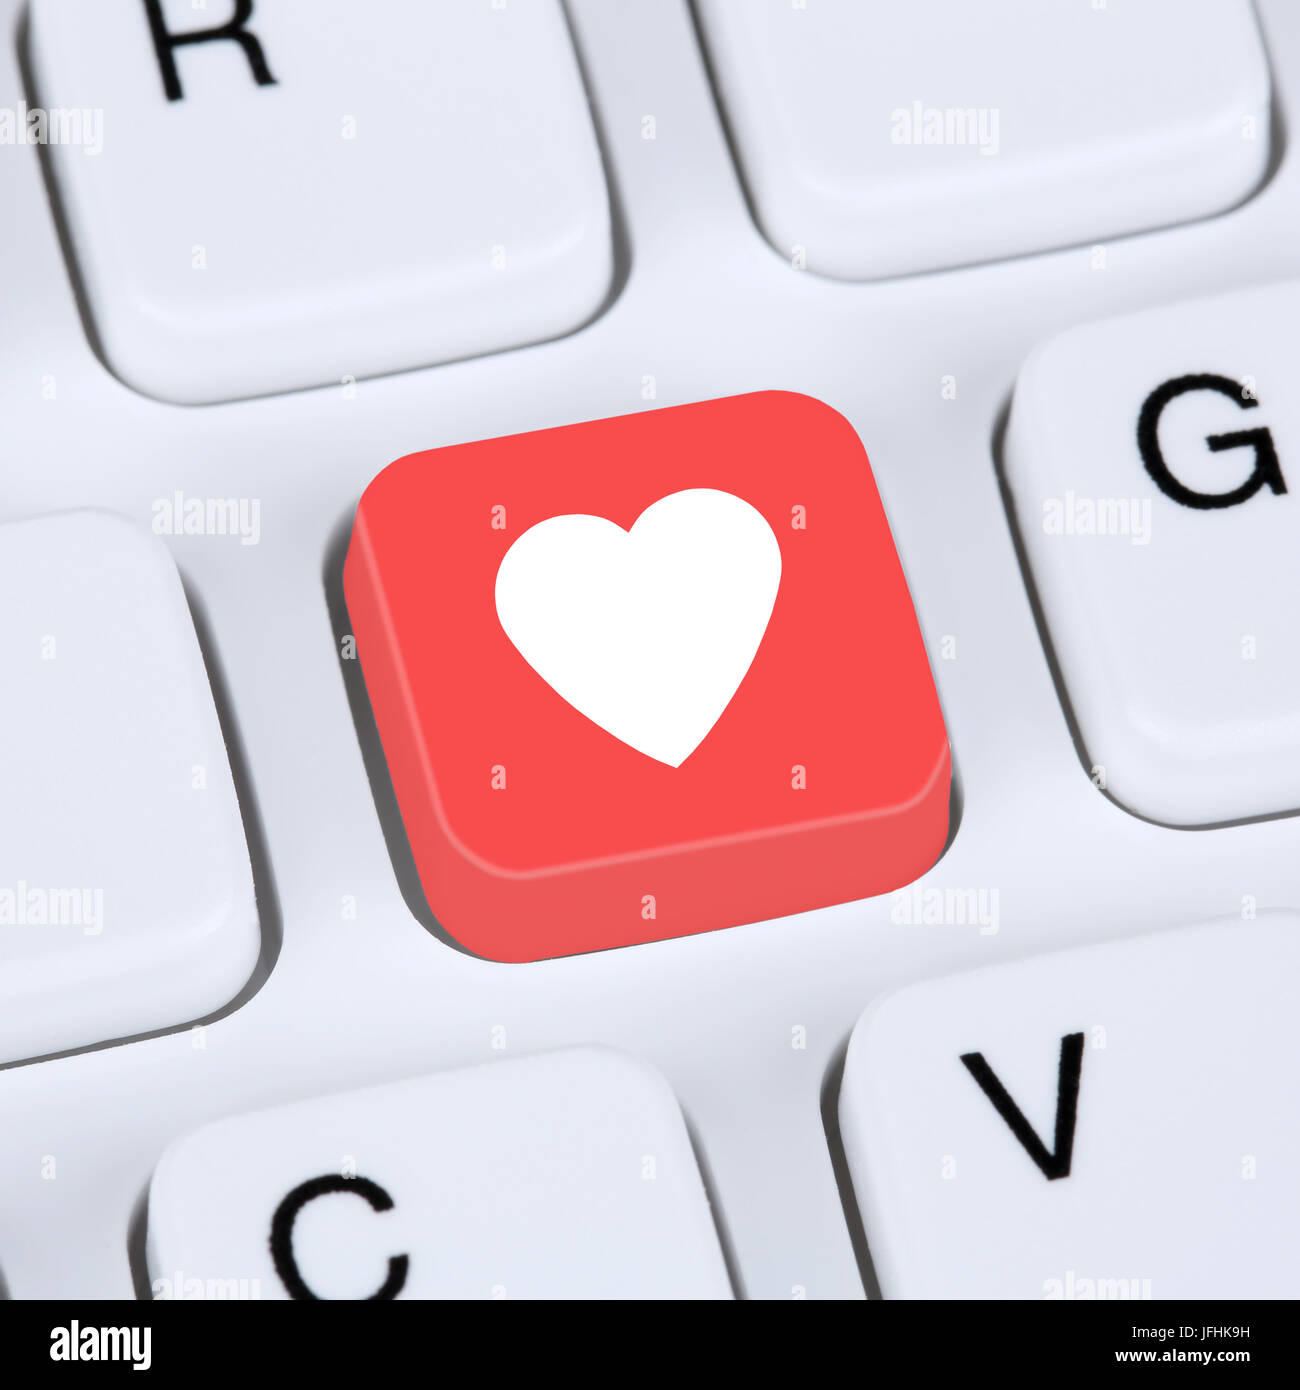 something is. Free dating phone line numbers suggest you visit